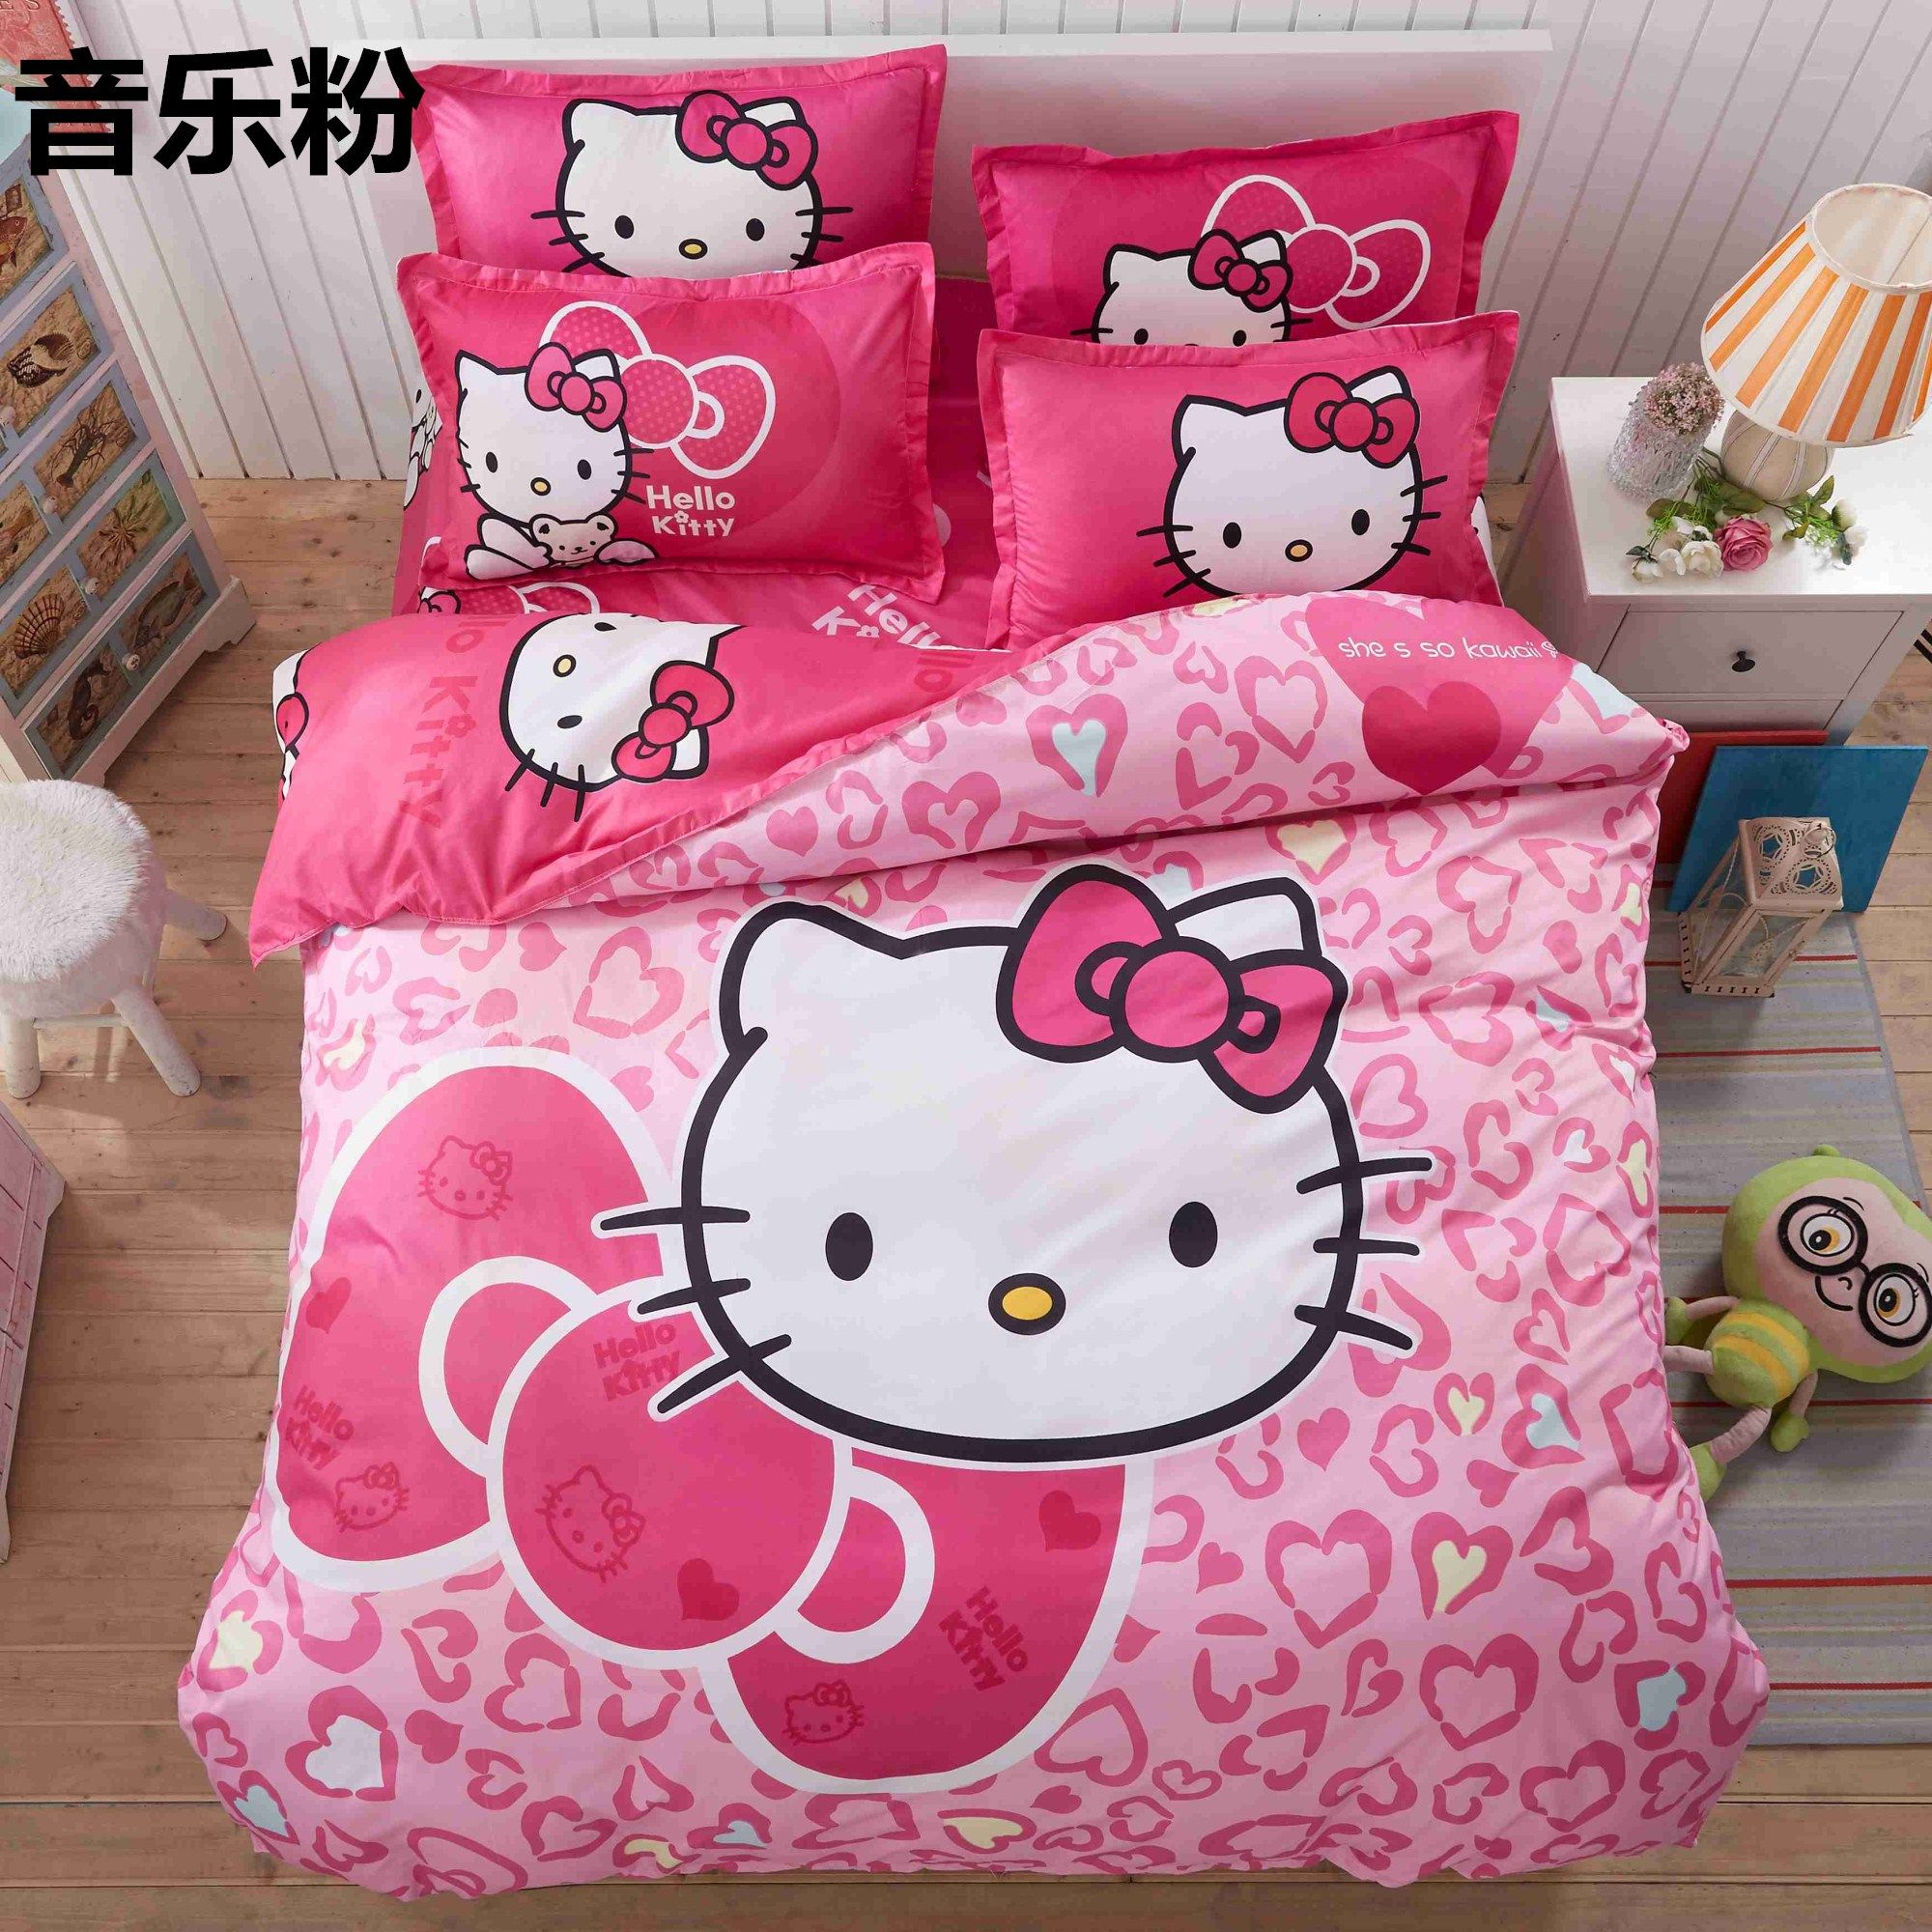 Home Textile Hello Kitty Bedding Set Cartoon Cotton Bed Set For